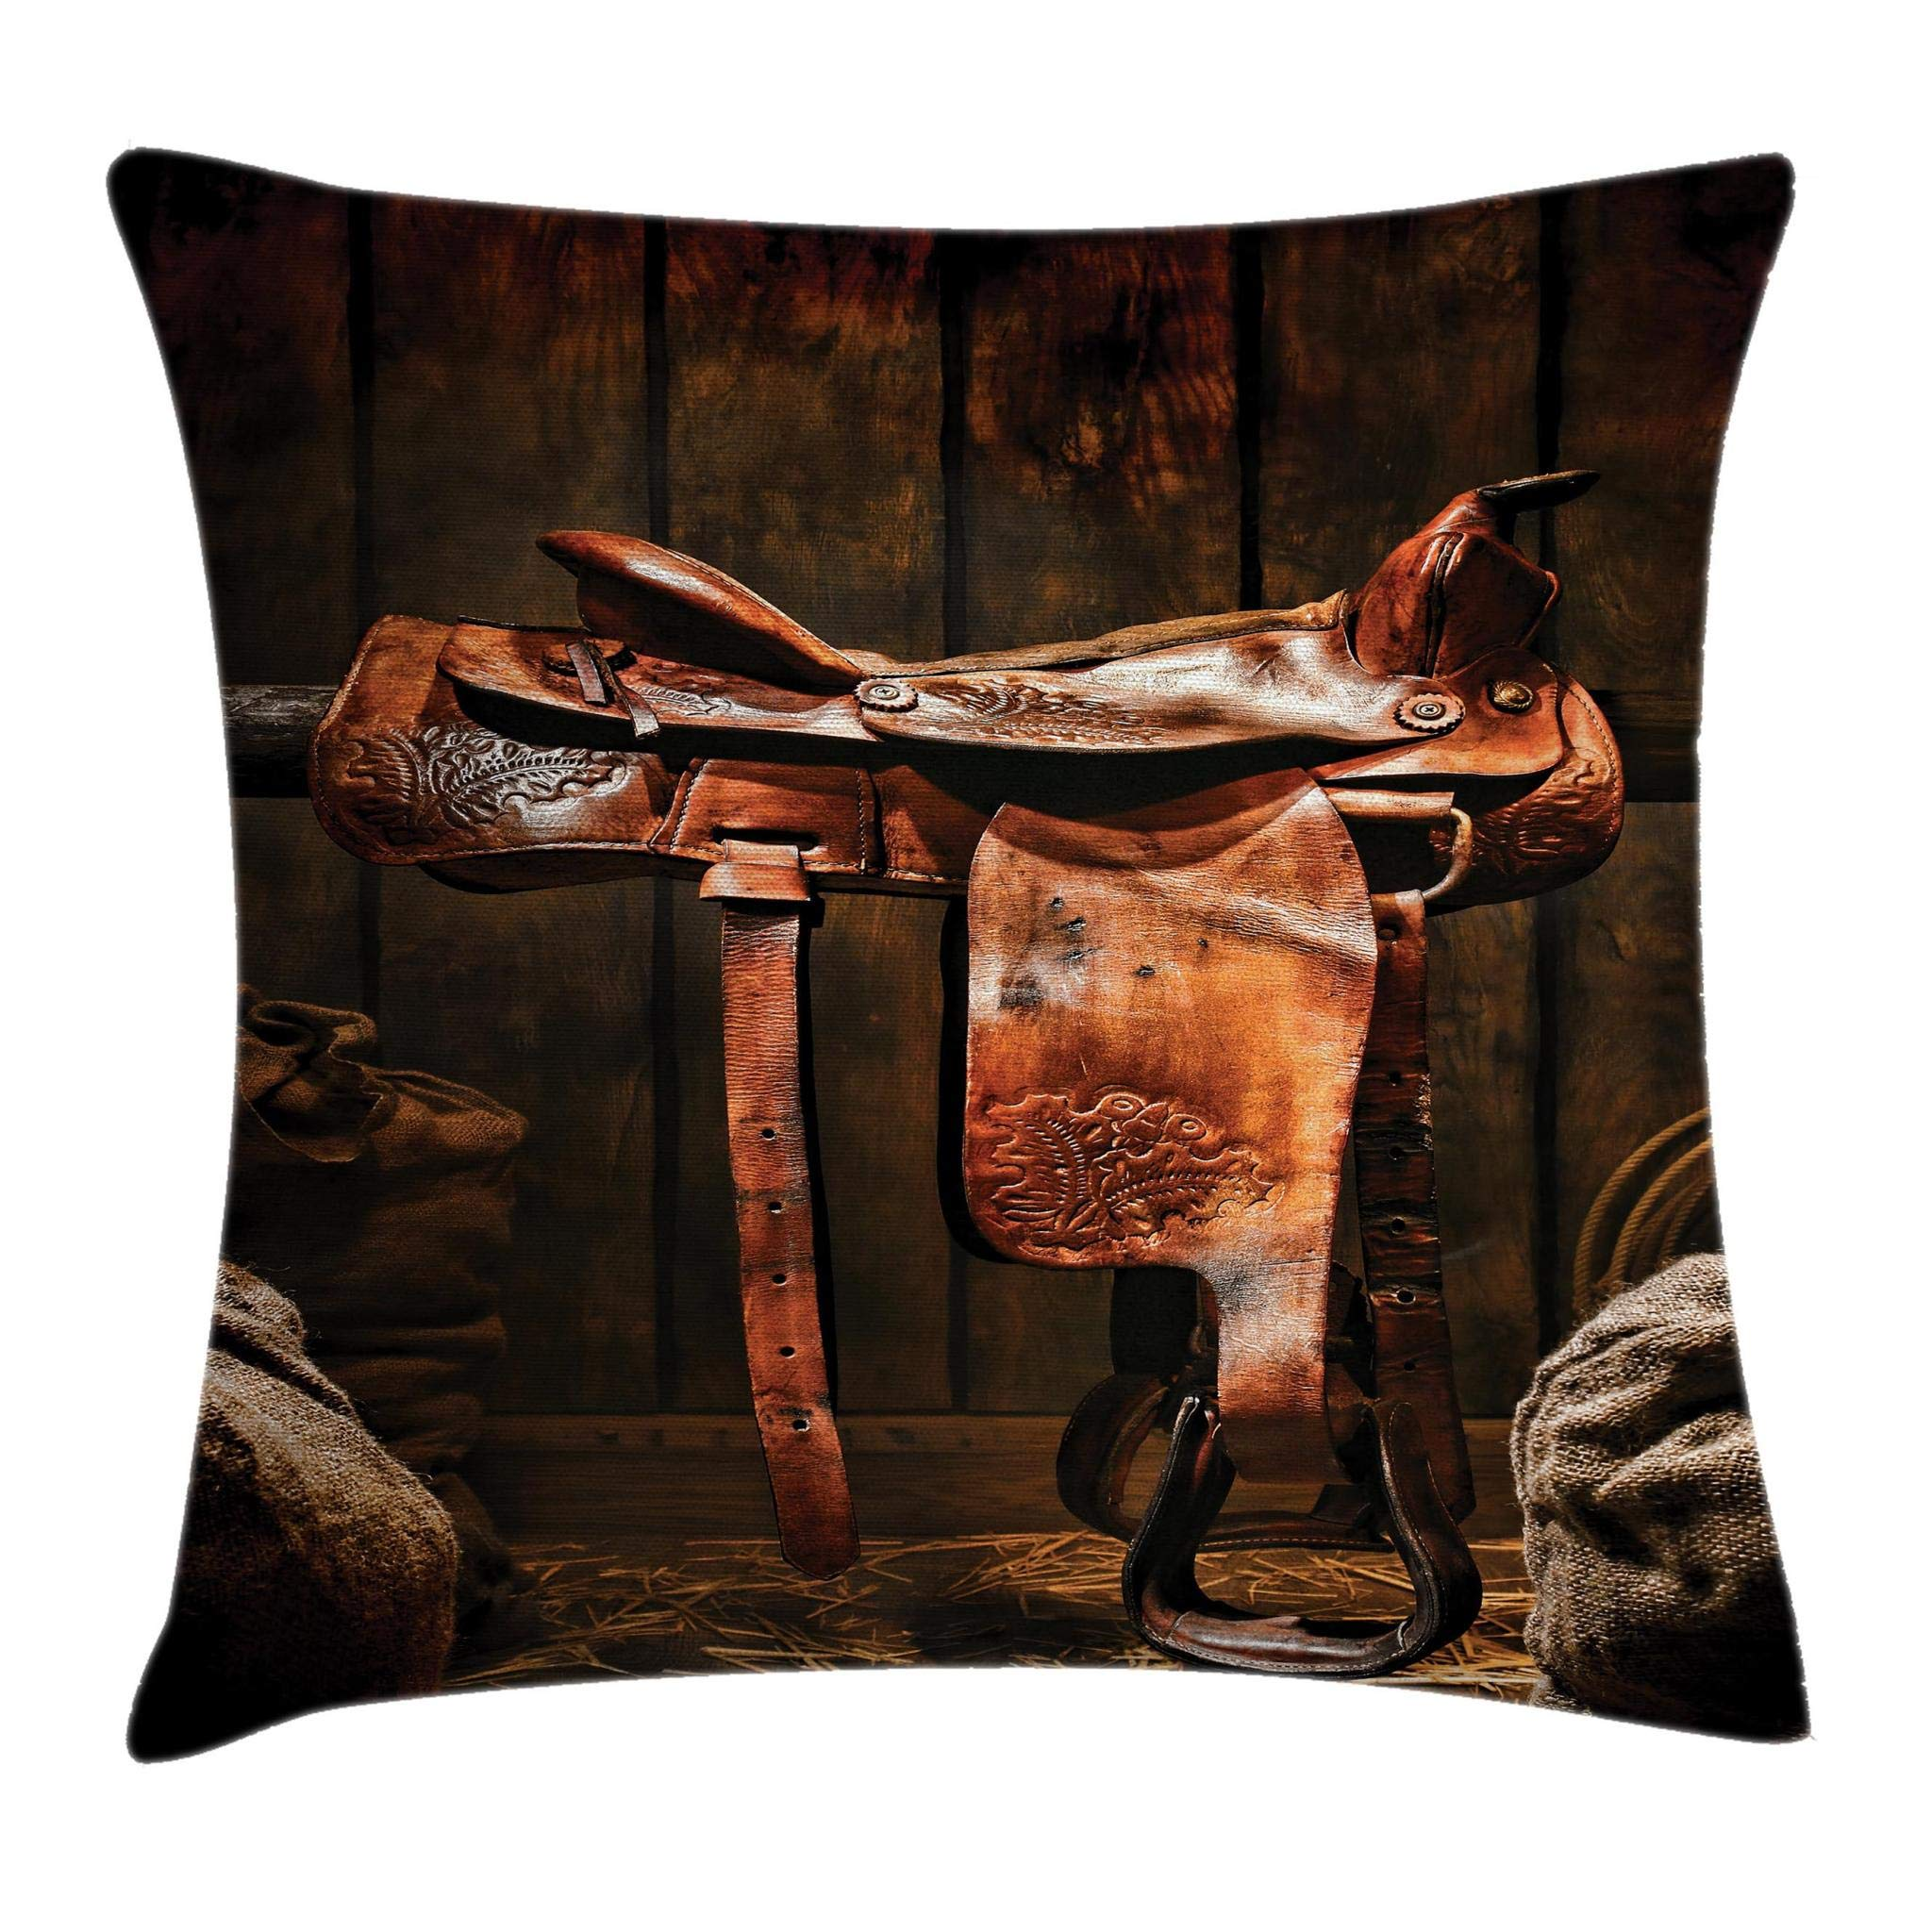 Ambesonne Western Throw Pillow Cushion Cover, American West Traditional Authentic Style Rodeo Cowboy Saddle Wood Ranch Barn Image, Decorative Square Accent Pillow Case, 20 X 20 Inches, Dark Brown by Ambesonne (Image #1)